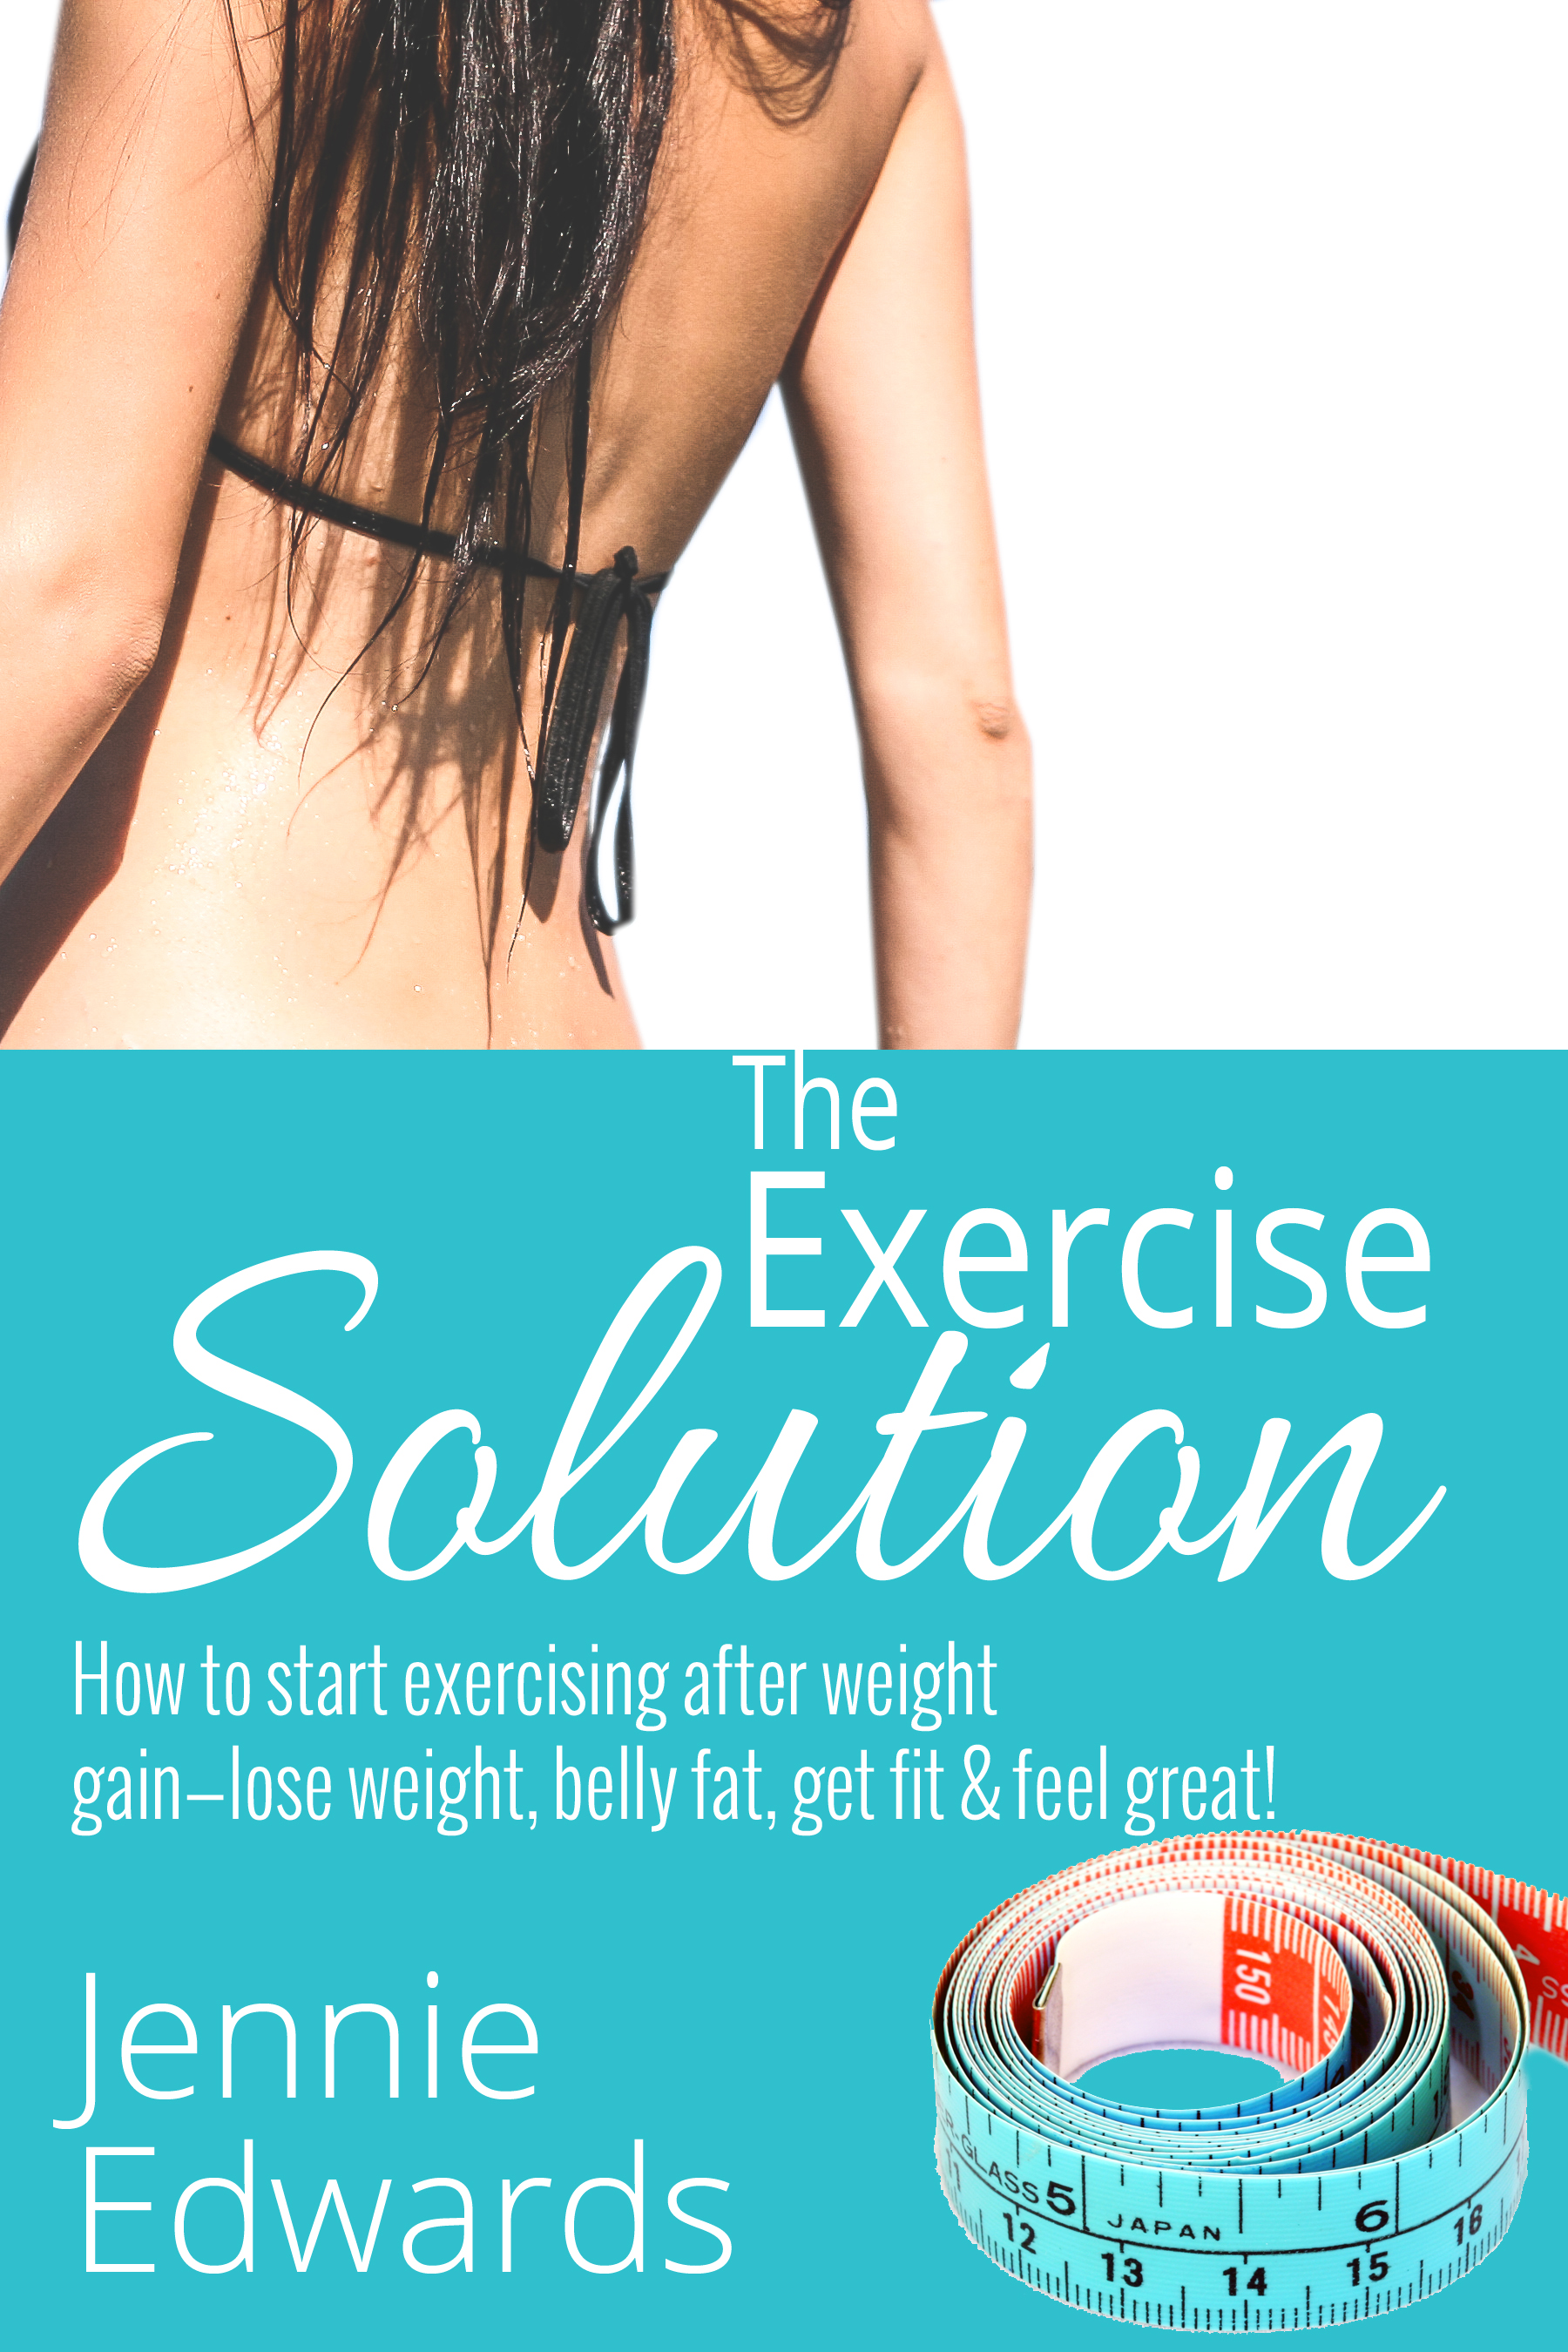 The Exercise Solution by Jennie Edwards